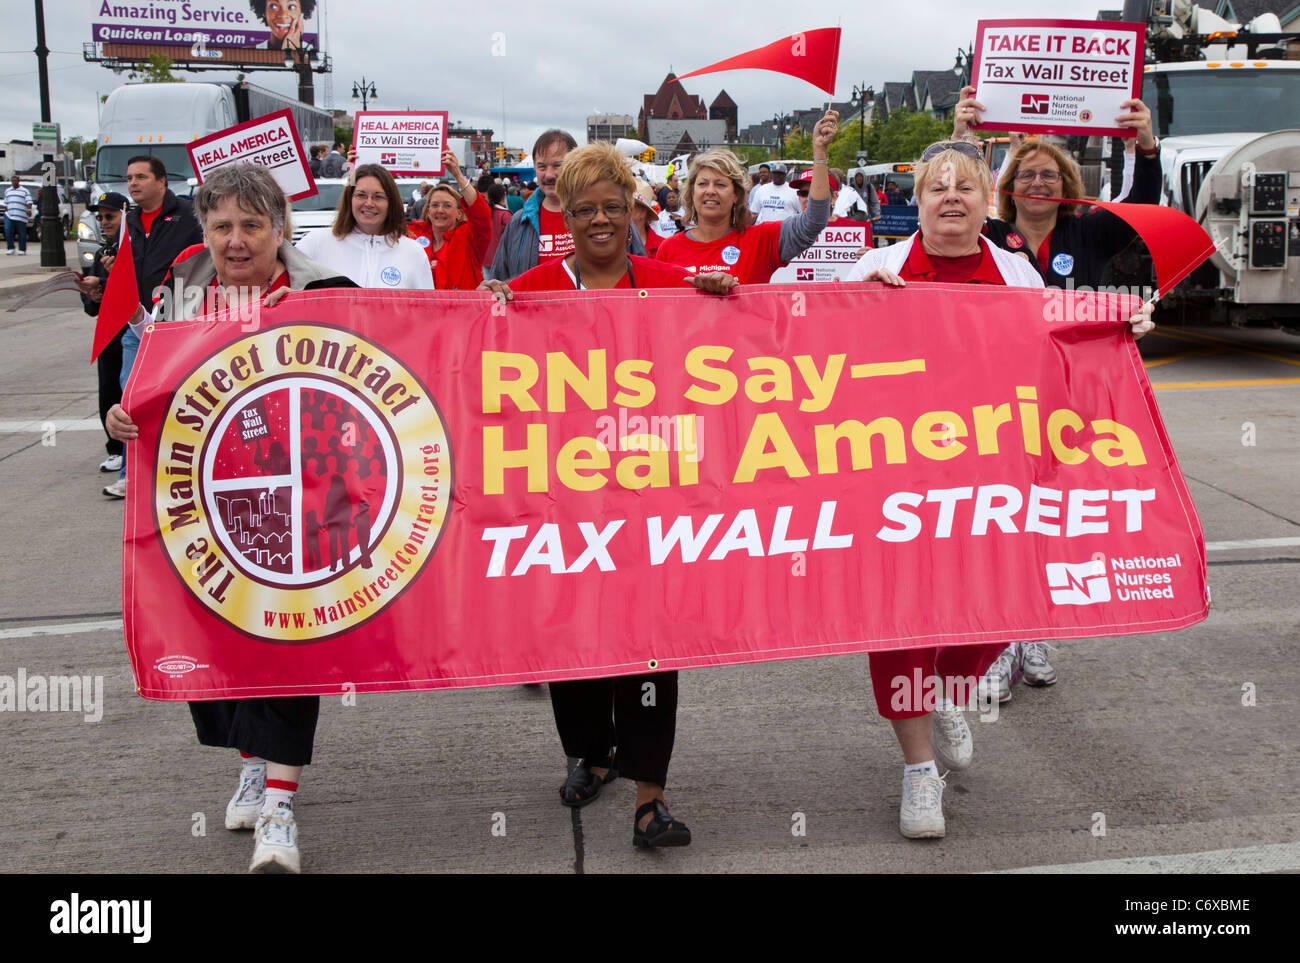 Detroit, Michigan - Members of National Nurses United march in the Labor Day parade, calling for higher taxes on - Stock Image